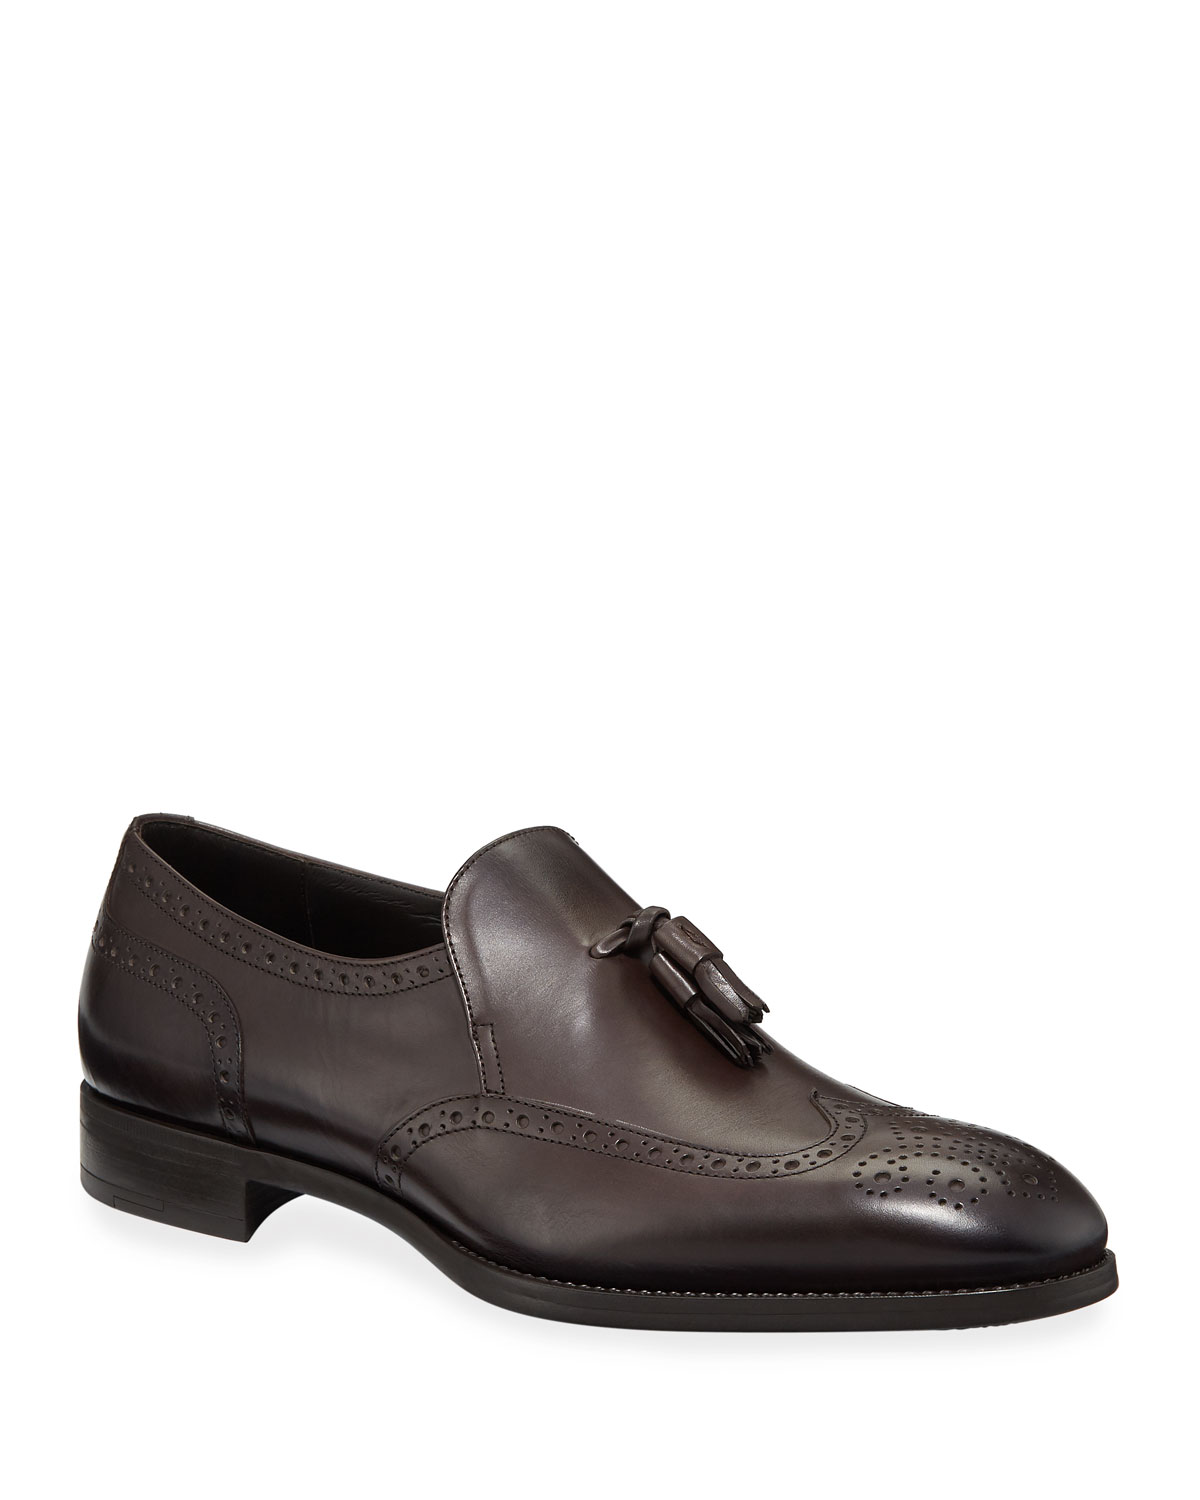 Giorgio Armani Loafers MEN'S TASSEL WING-TIP LOAFERS